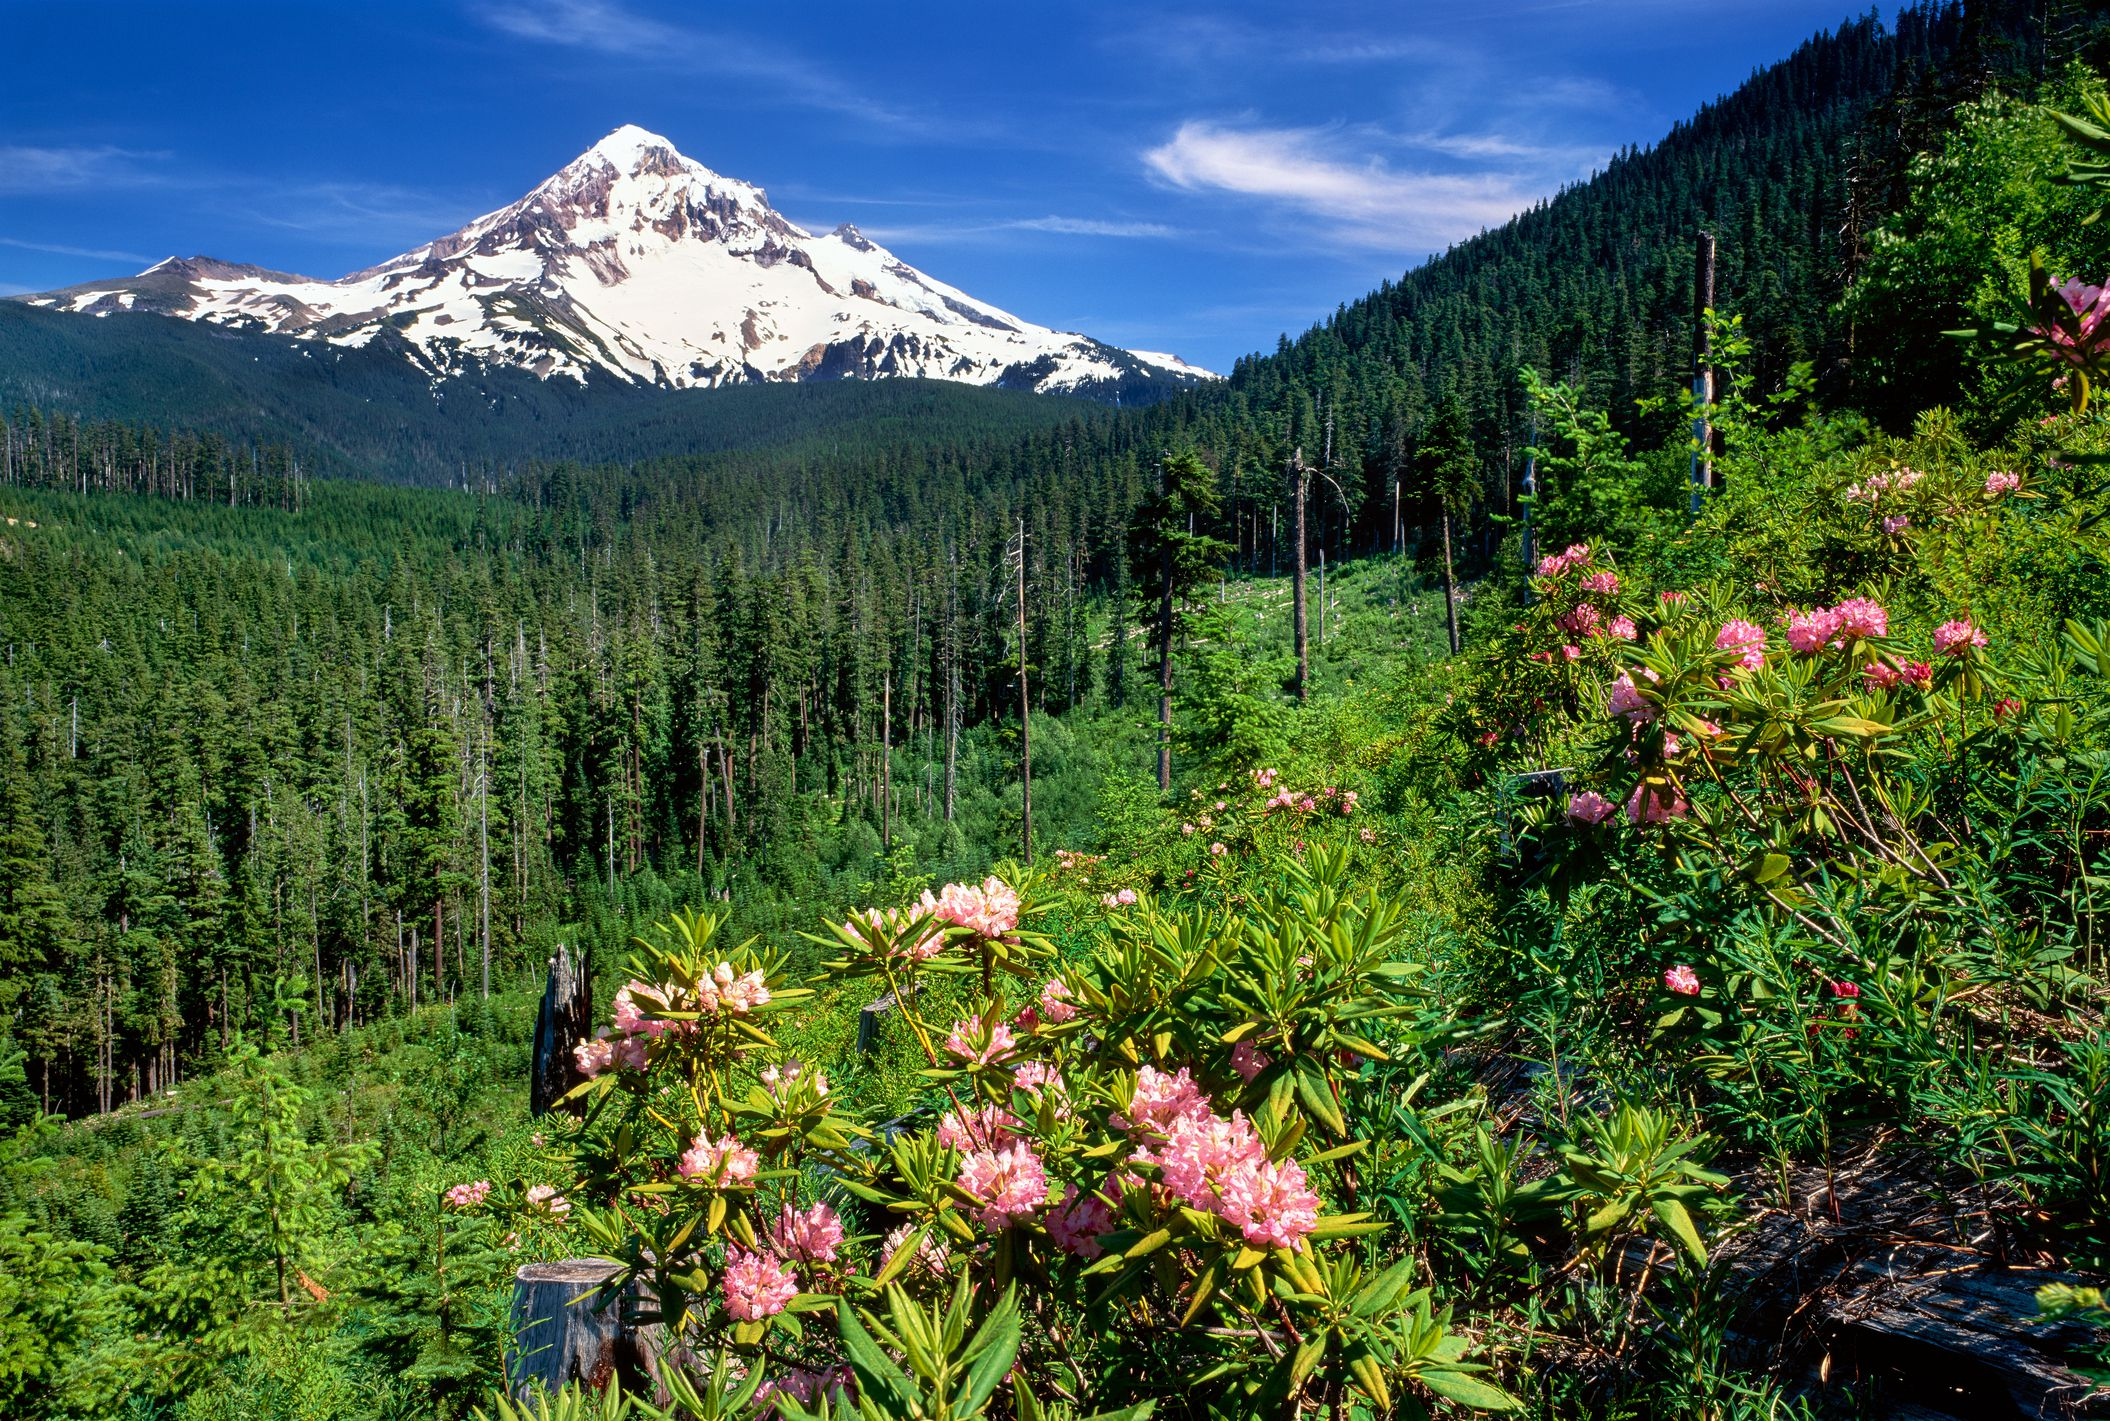 Rhodendron flowers blooming on plant with mountain range in the background, Mt Hood, Lolo Pass, Mt Hood National Forest, Oregon, USA